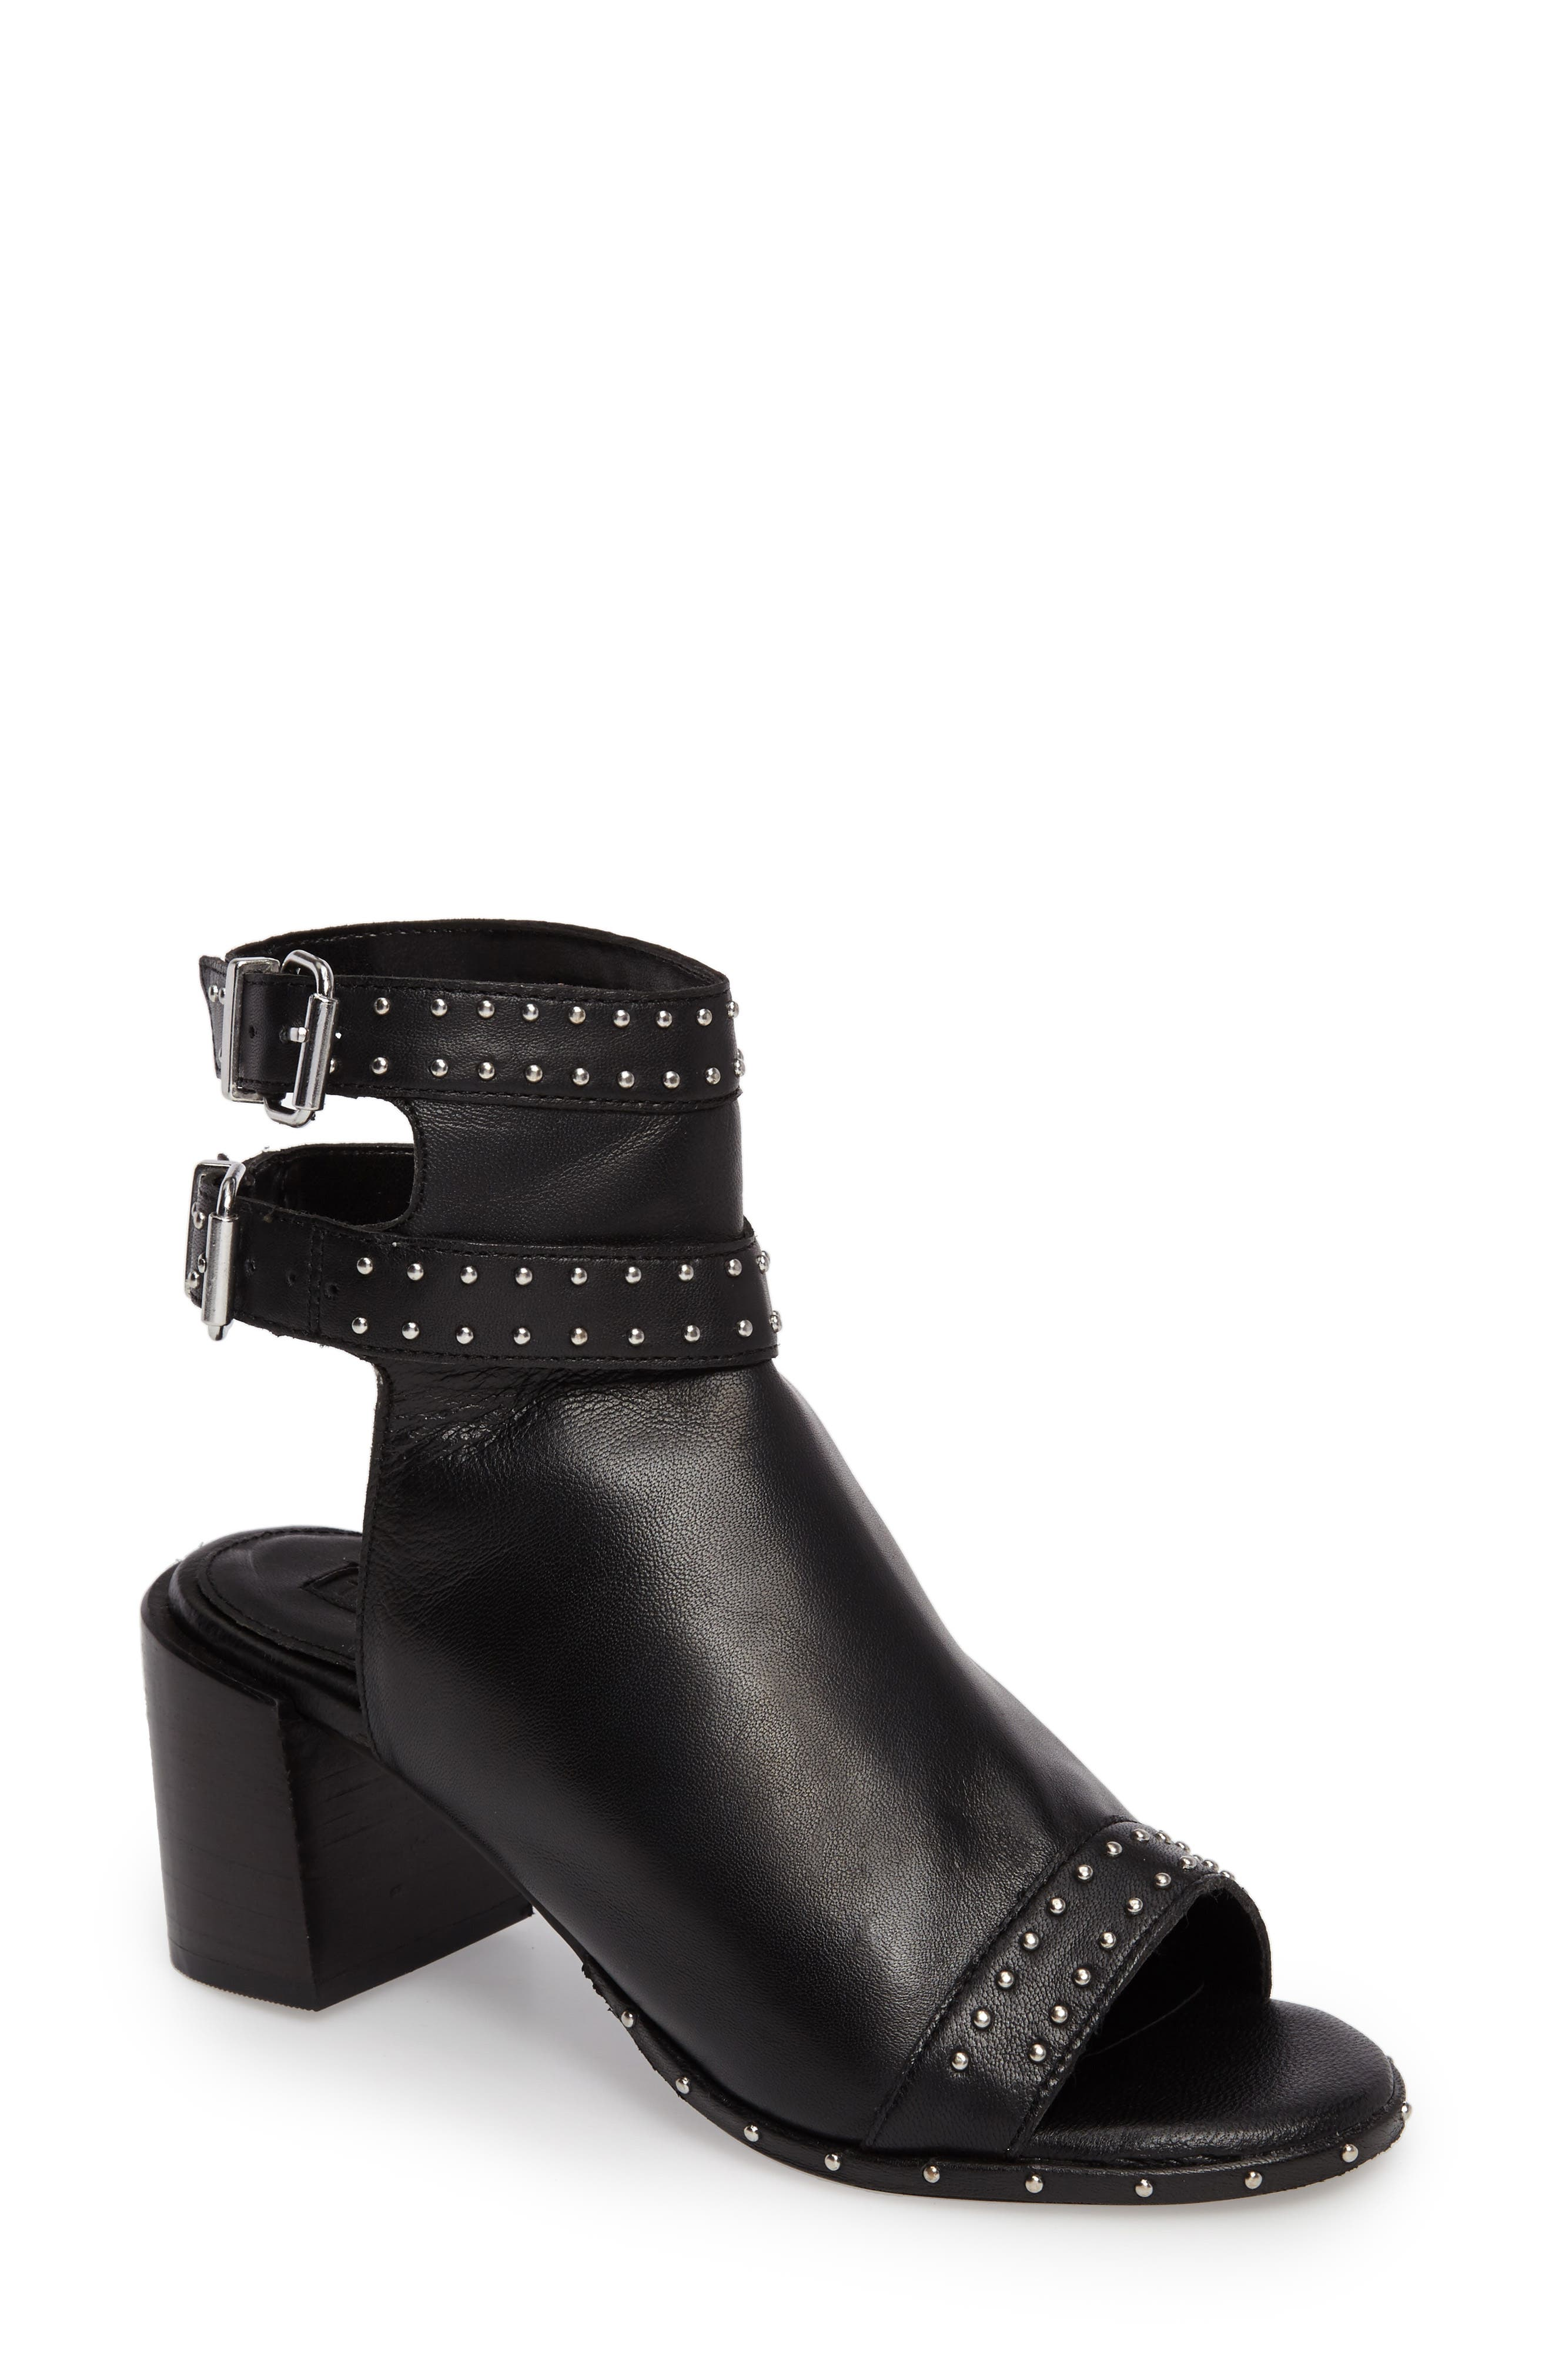 North Studded Bootie Sandal,                             Main thumbnail 1, color,                             001